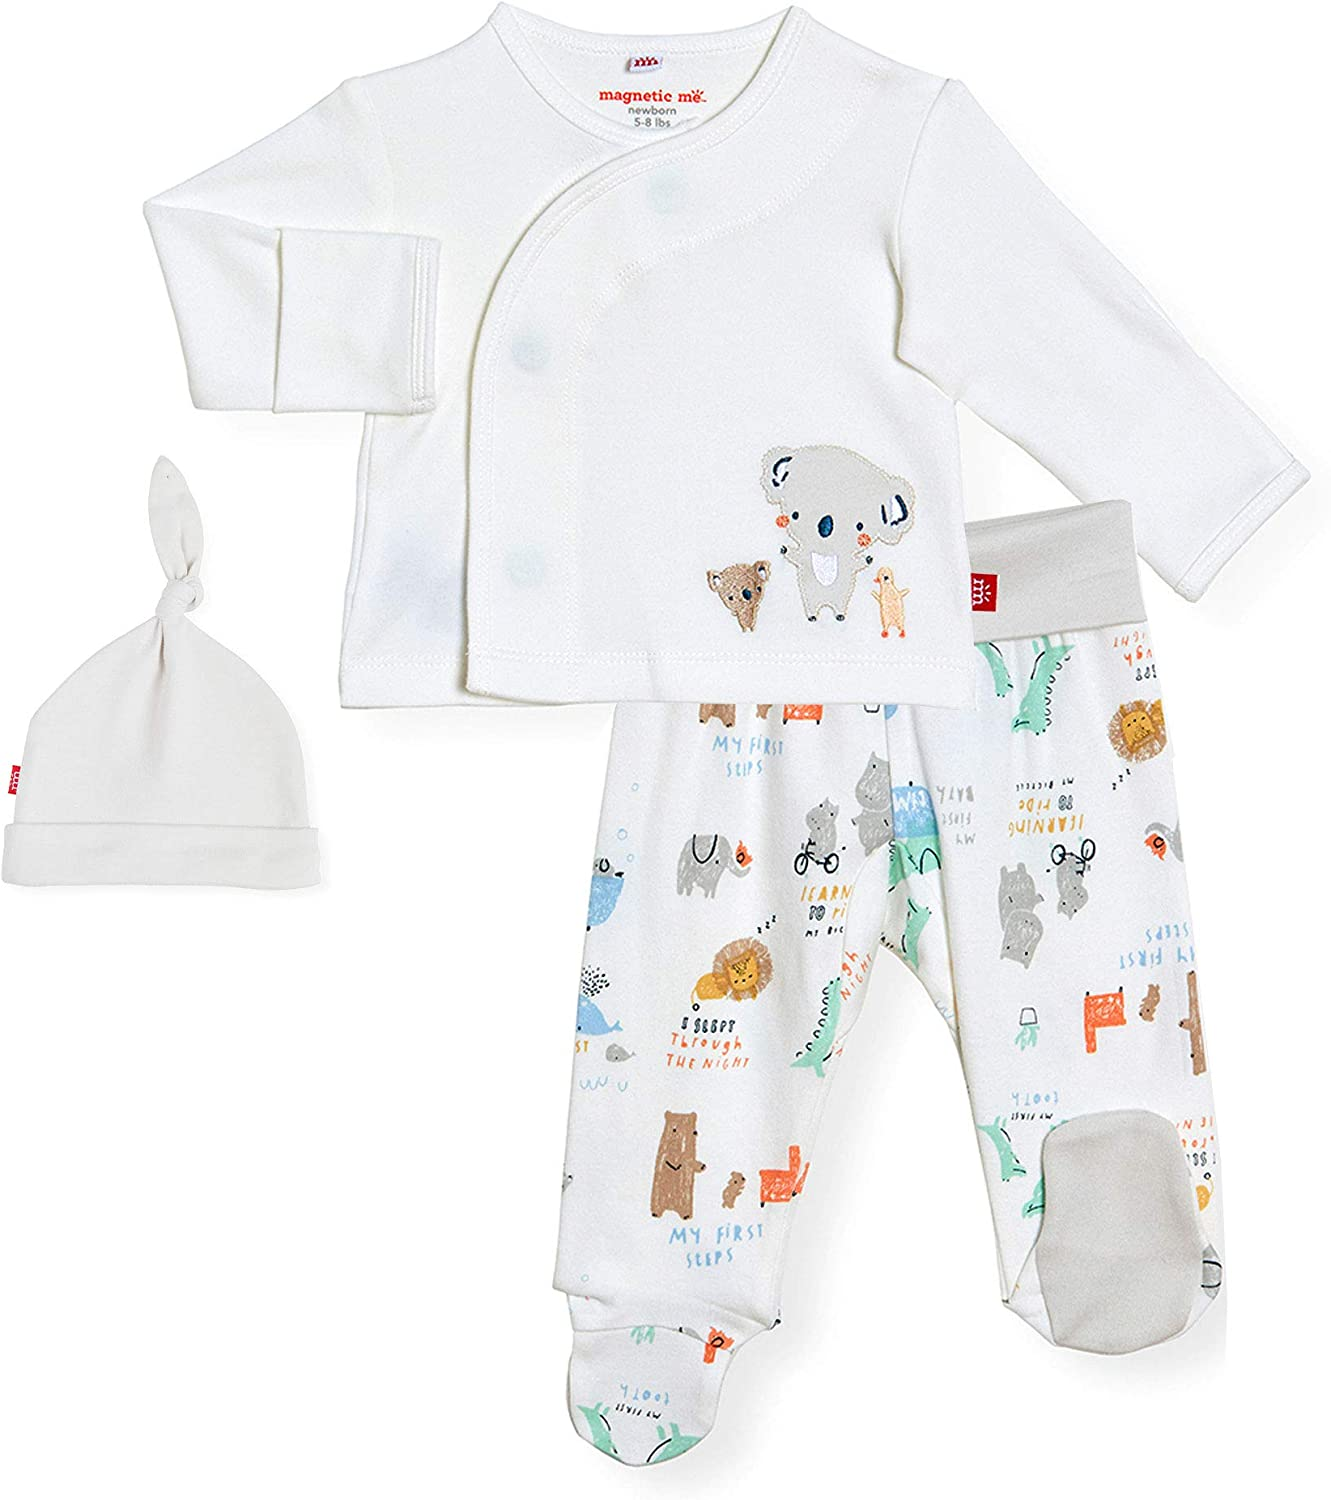 Magnetic Me by Magnificent Baby 100% Organic Cotton Magnetic Kimono Set 3-Piece Shirt, Pant, Hat Set